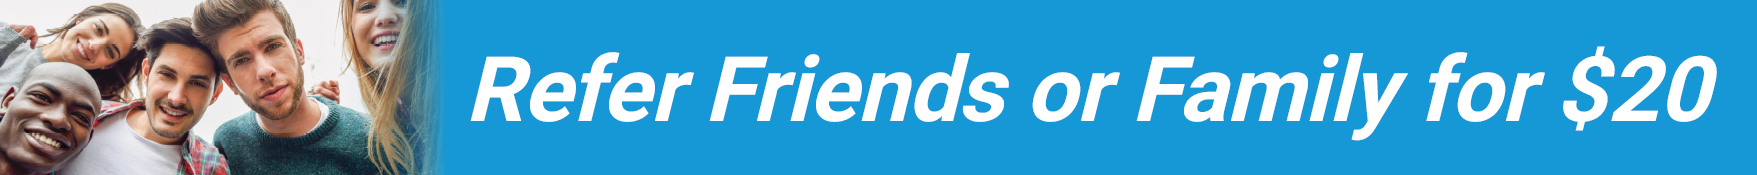 BuyWise Refer a Friend